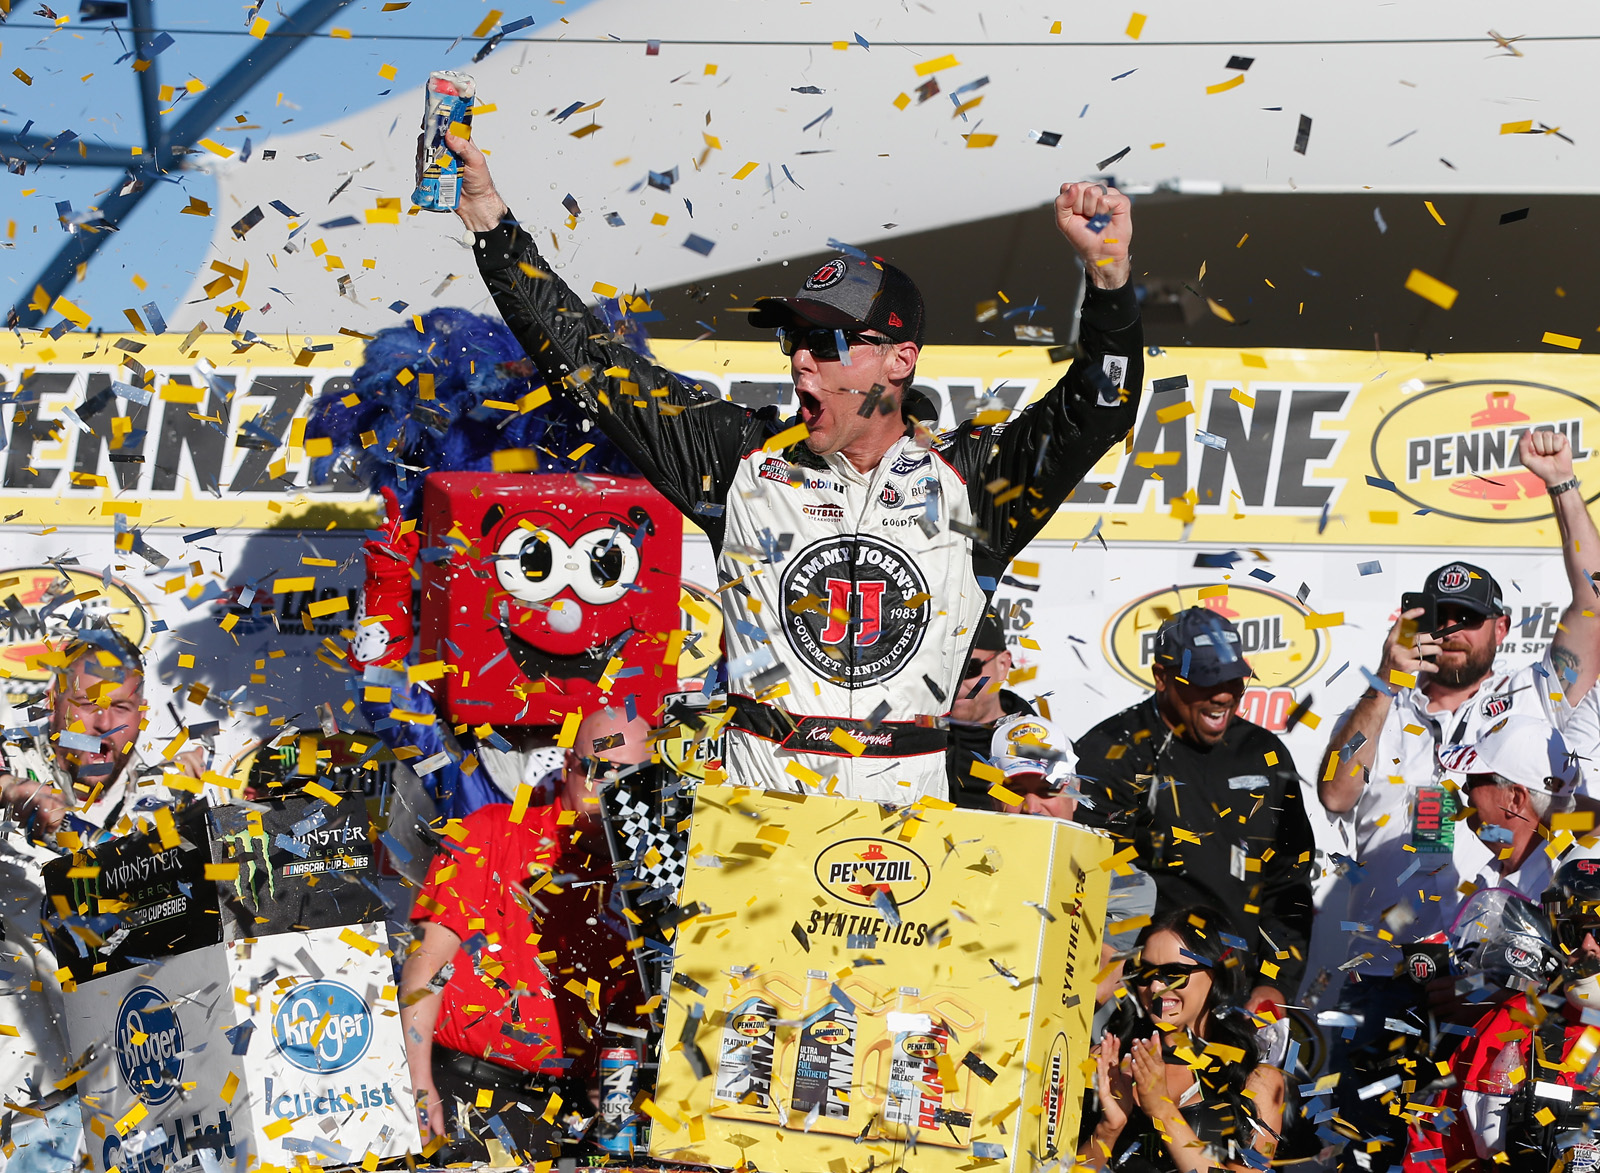 Monster Energy NASCAR Cup Series Pennzoil 400 presented by Jiffy Lube